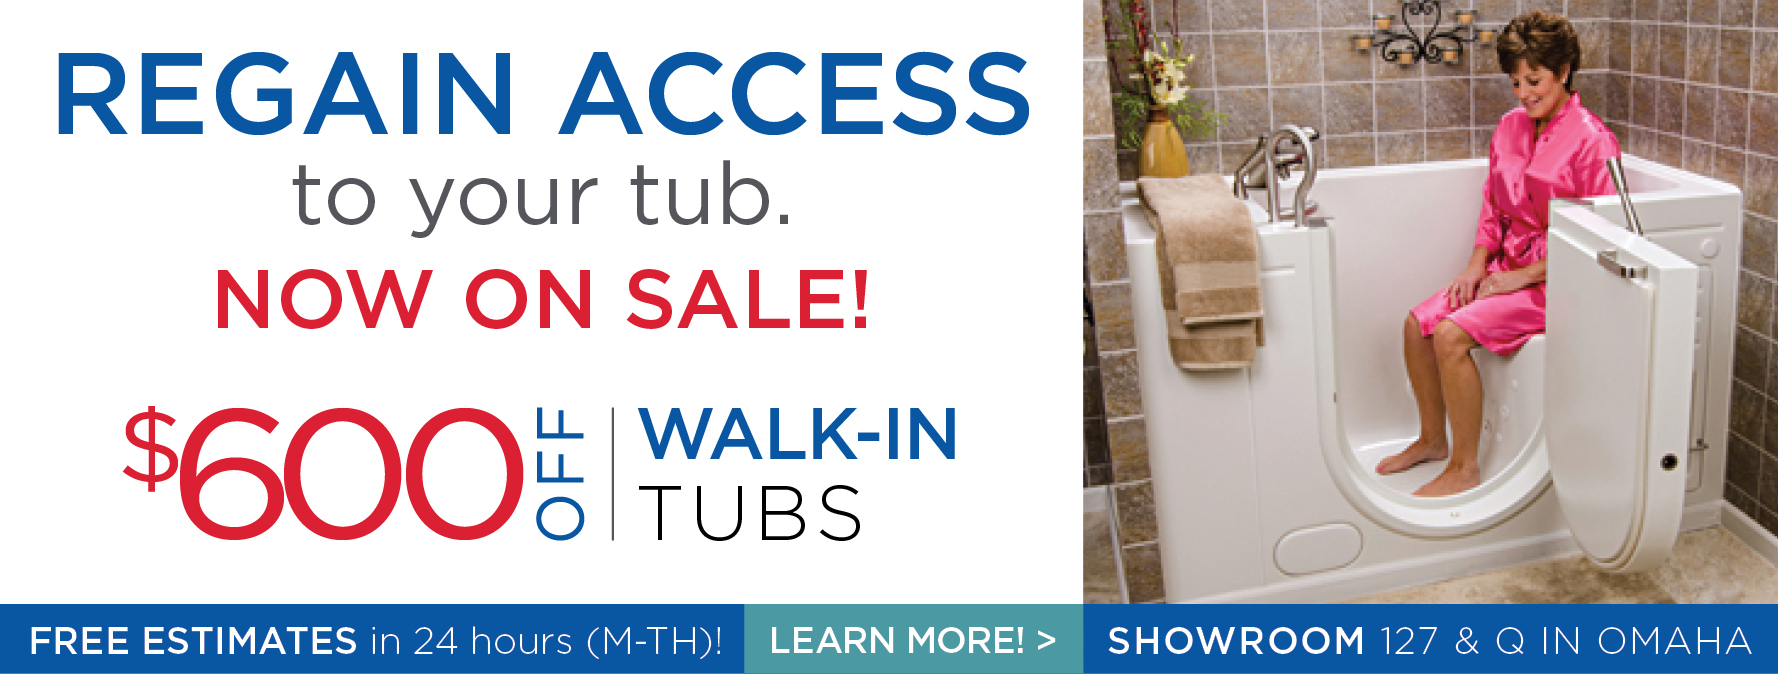 Walk-in Tubs now on sale - save up to $600!